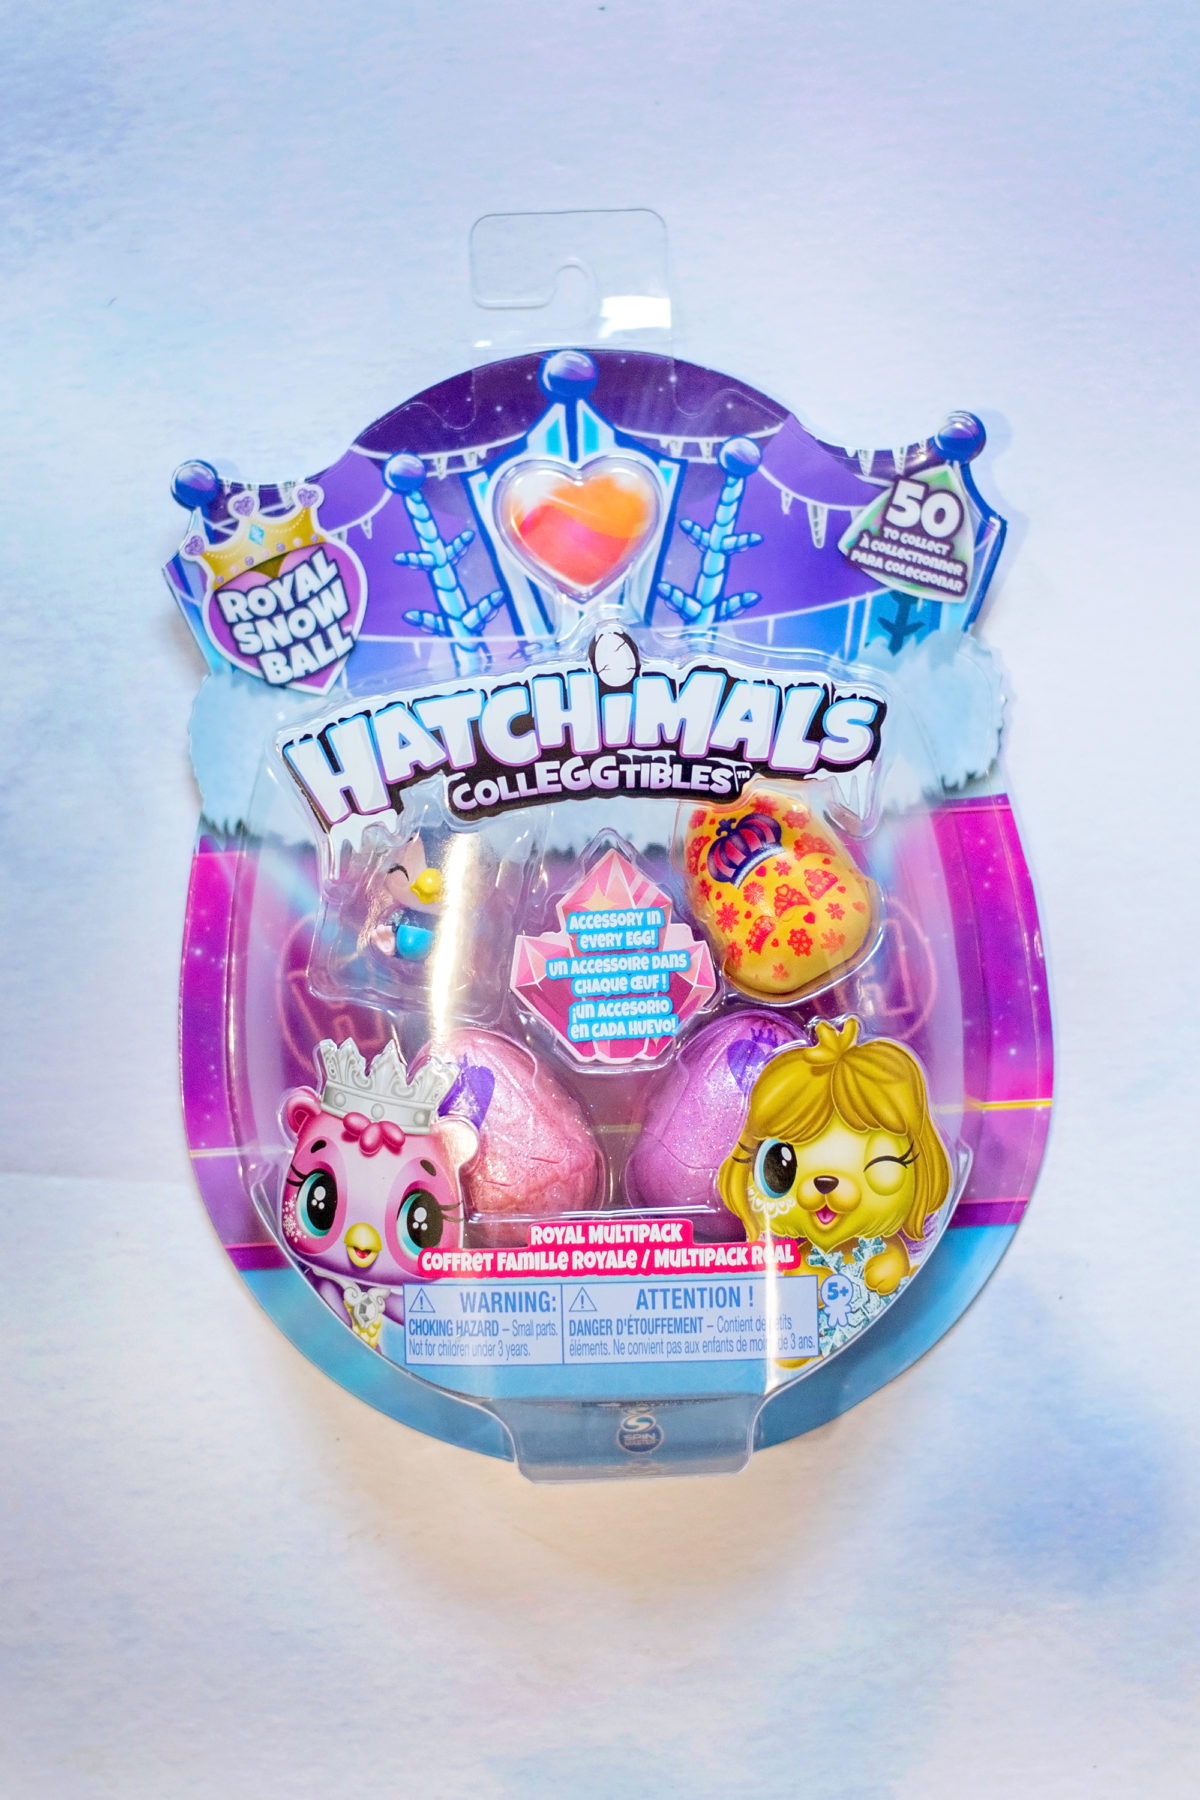 Royal Snow Ball Hatchimals CollEGGtibles - Season 6.5!